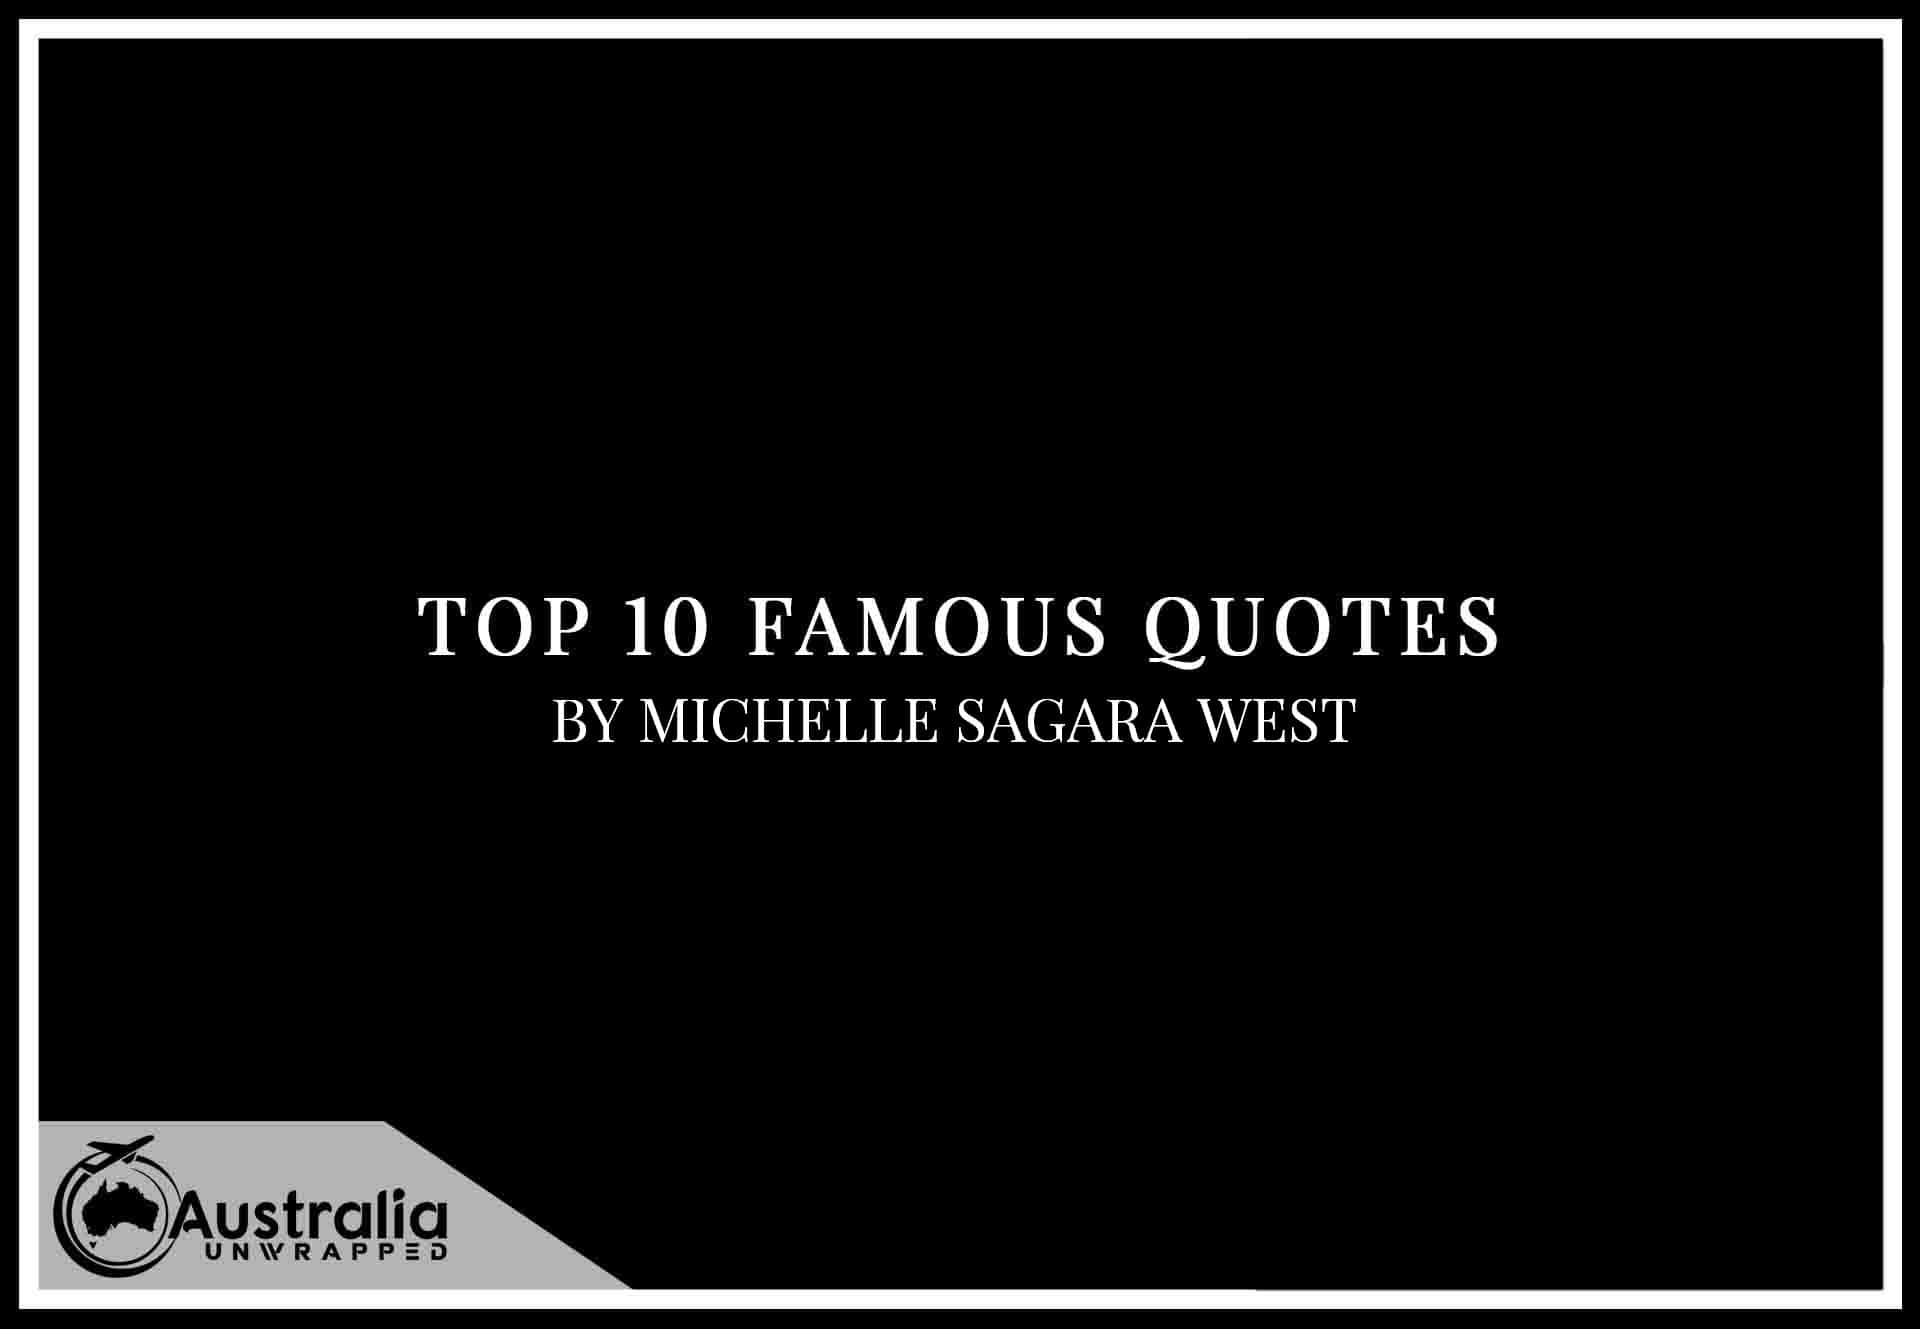 Top 10 Famous Quotes by Author Michelle Sagara